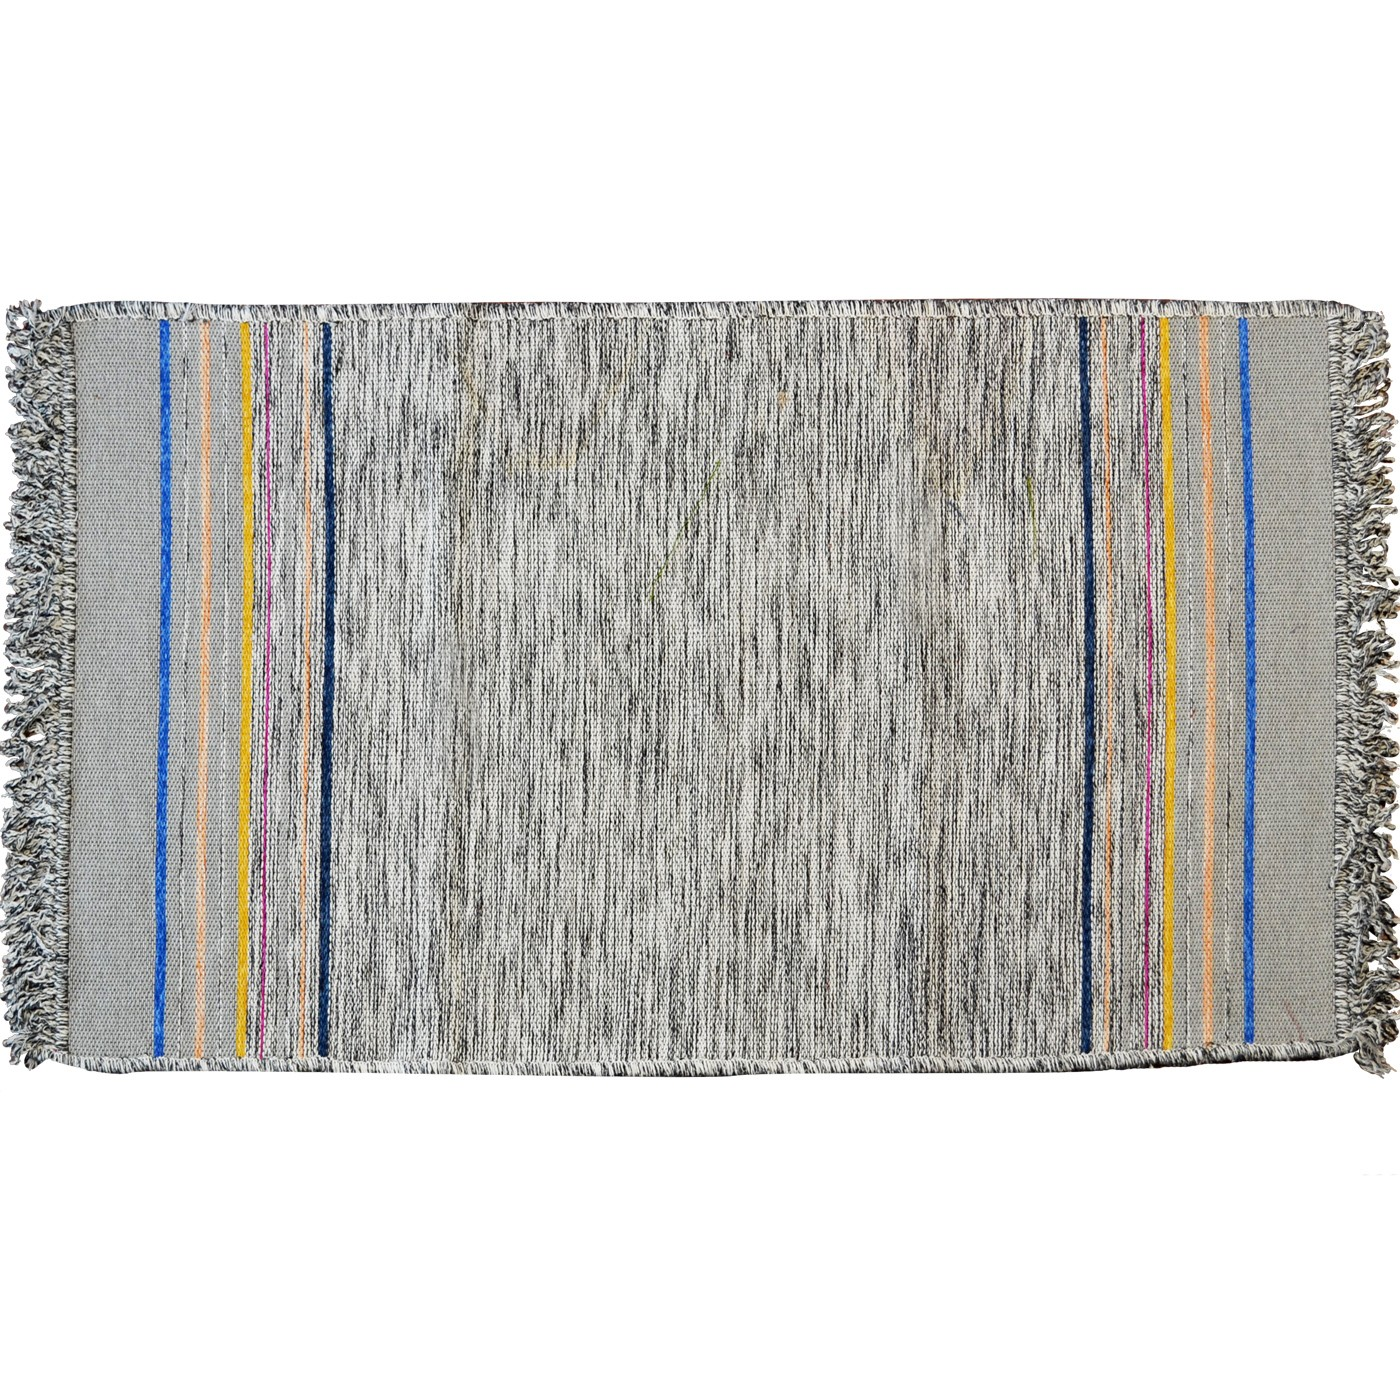 Irregular End Striped Rug, Grey